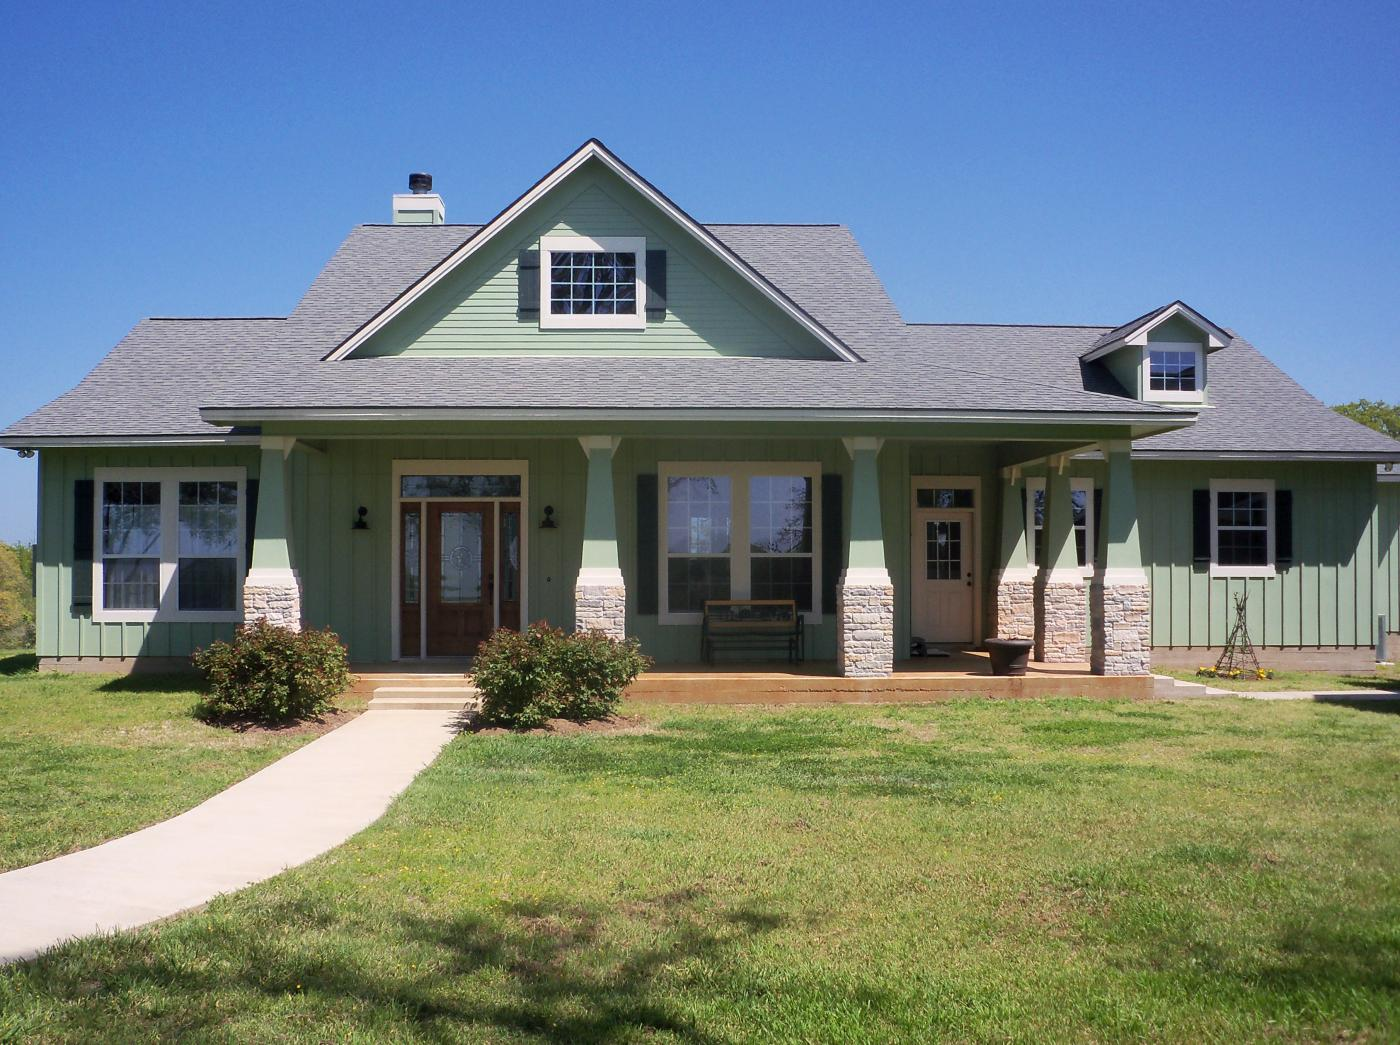 About us custom home builders in ar and tx southwest homes Home builders in arkansas